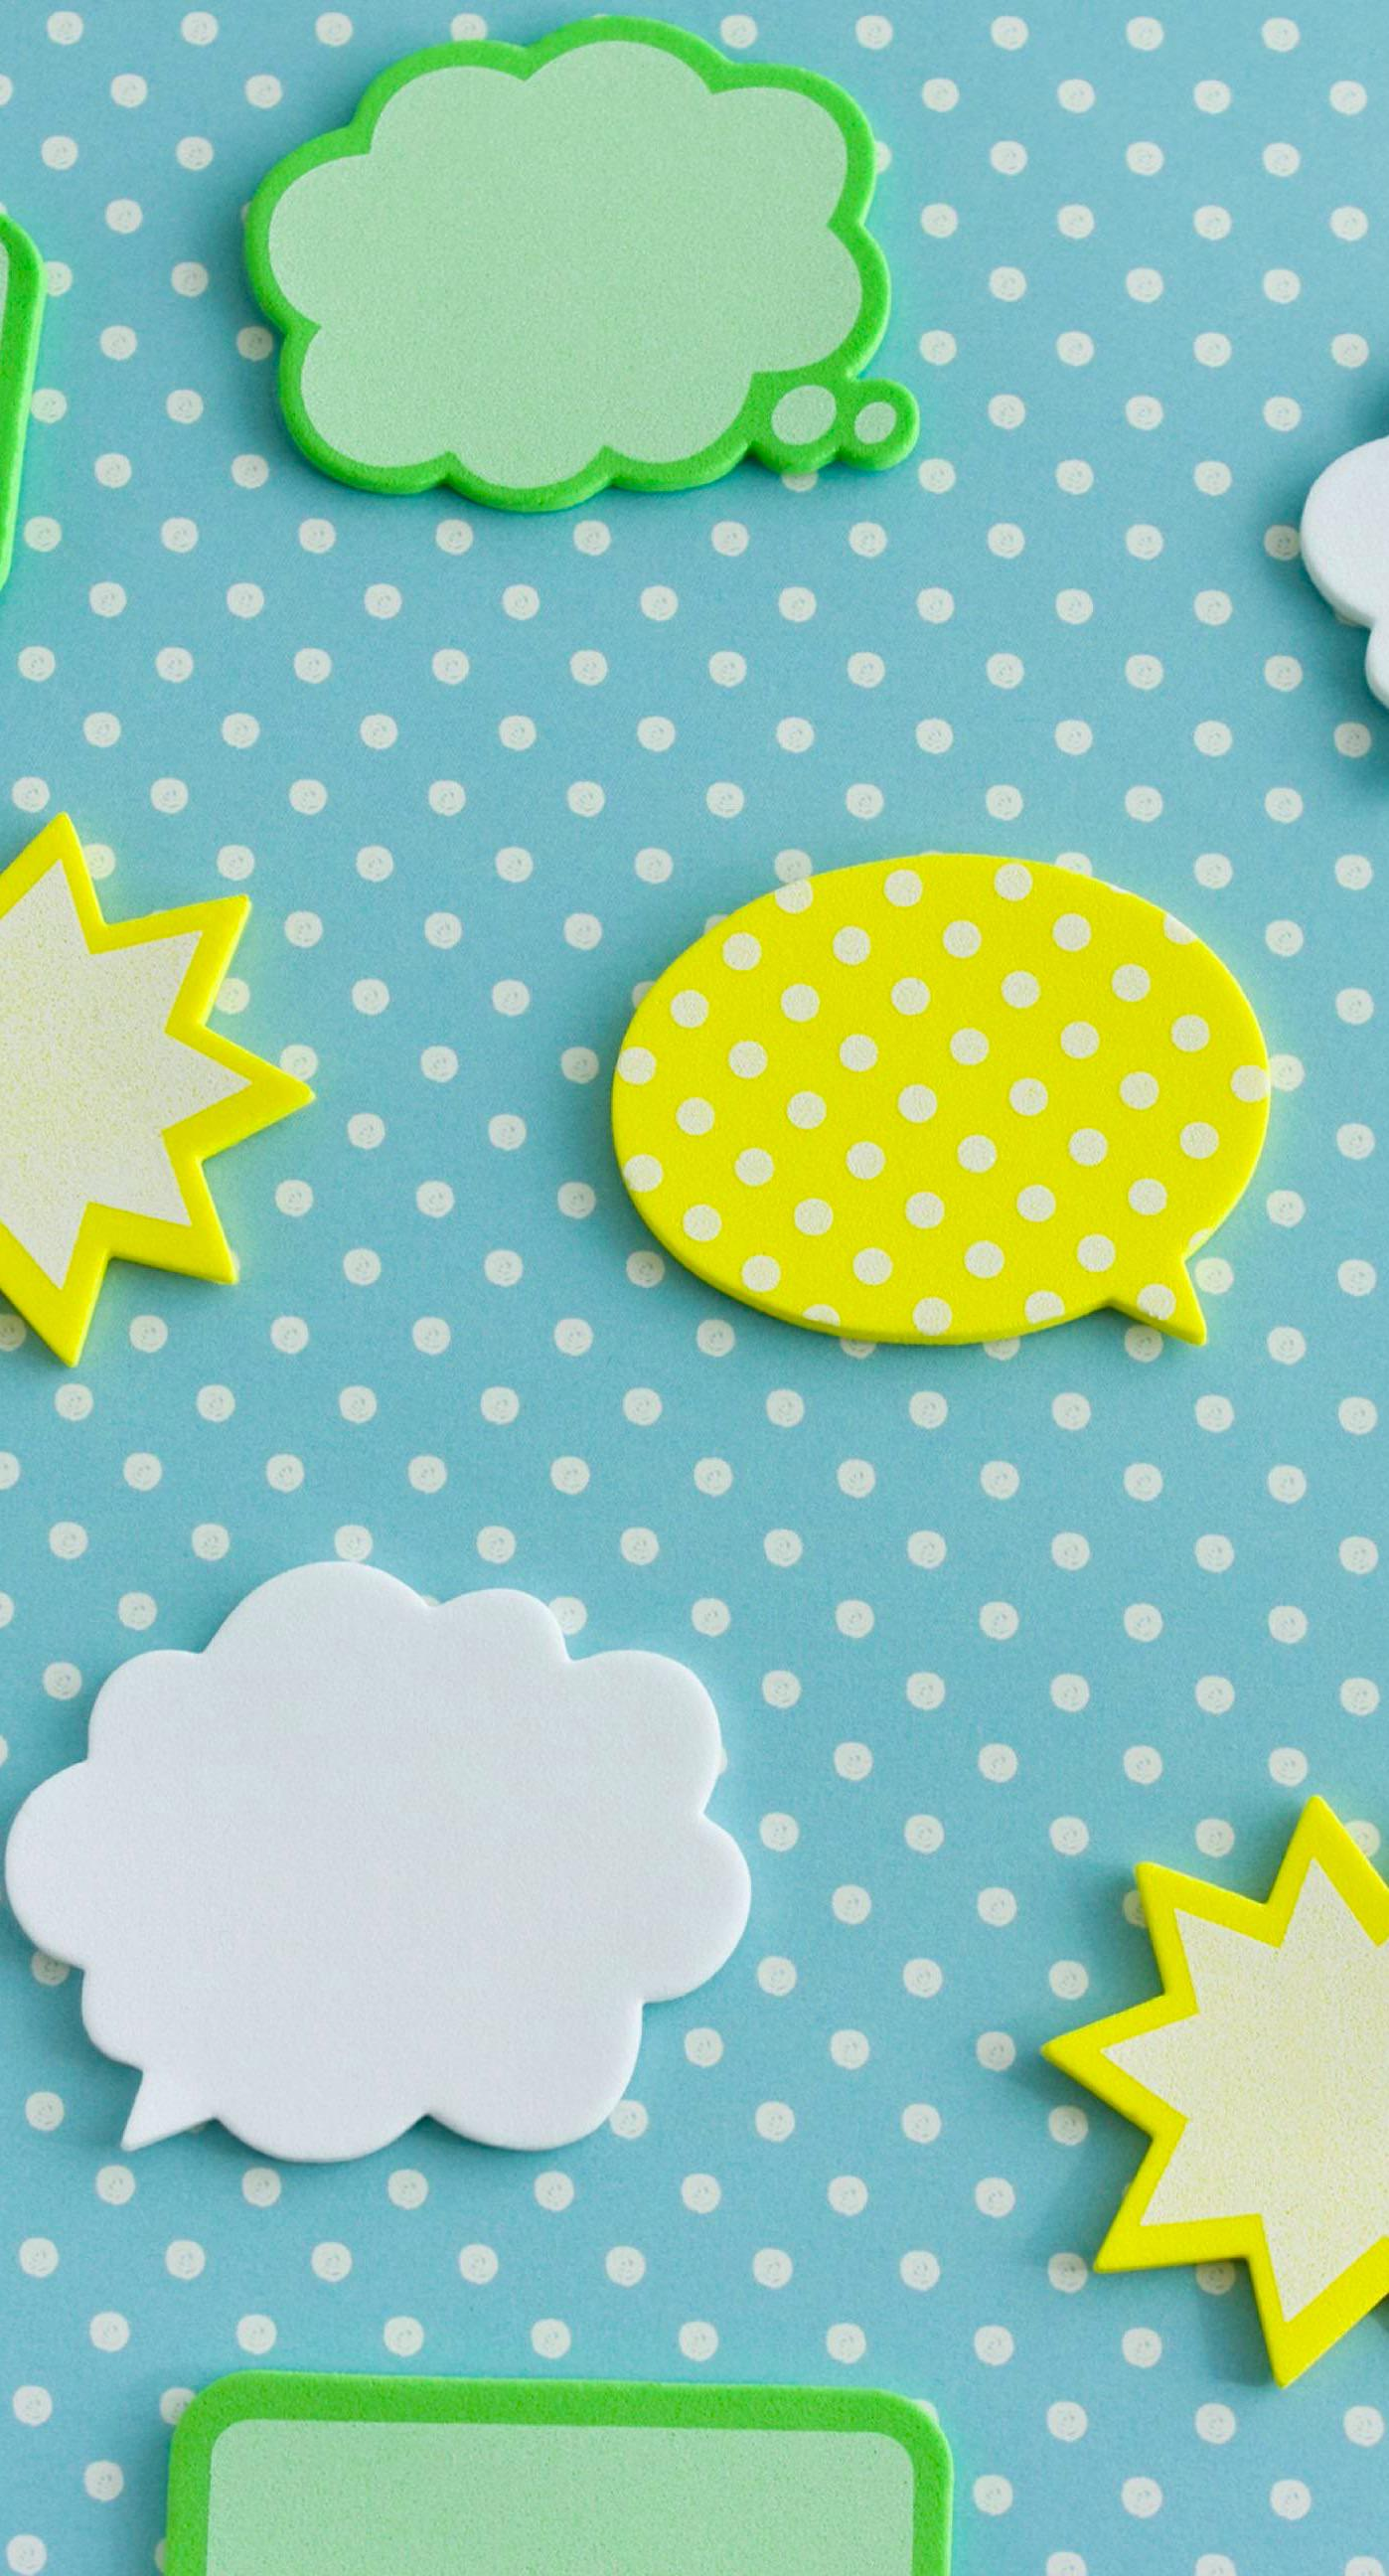 Cute Pineapple Iphone Wallpaper Yellow Green And Blue Balloon Cute Illustrations